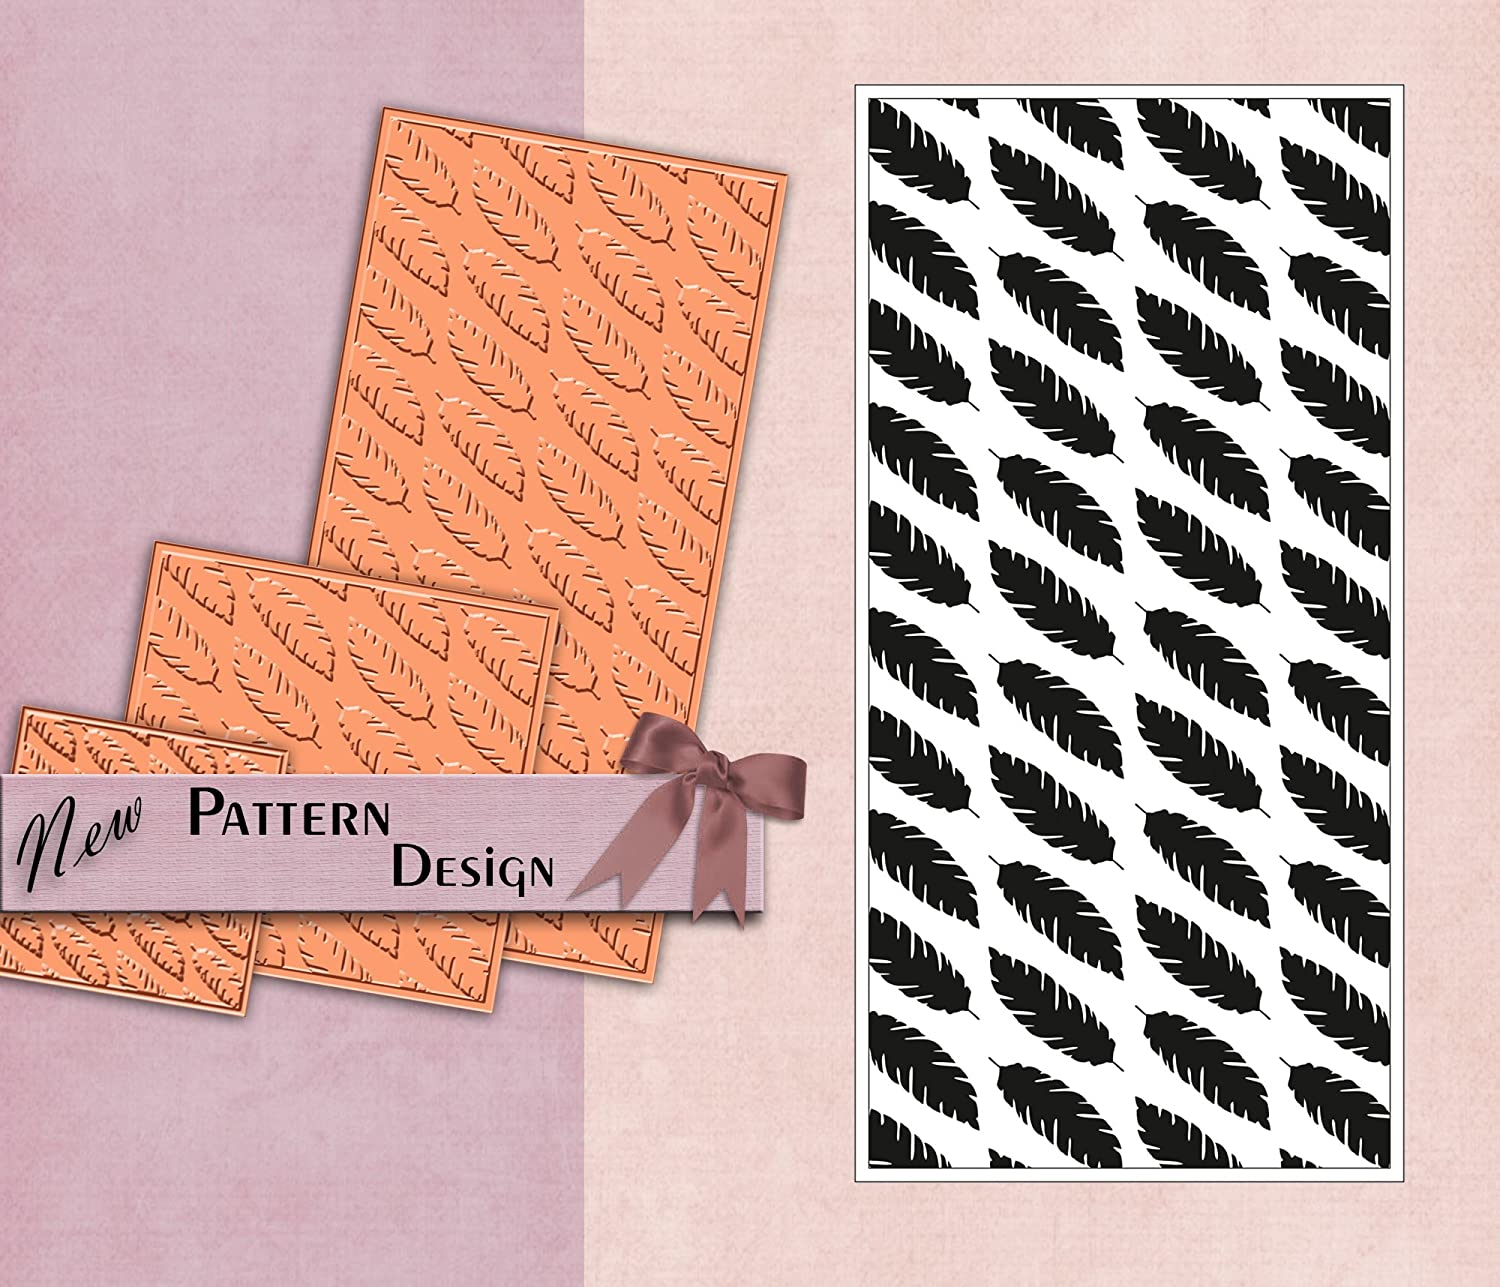 PRINTVALUE POLYMER TEXTURE STAMP LEAF PATTERN FABRIC & PAPER CRAFT DIY SUPPLY FLEXIBLE RUBBER TEMPLATE